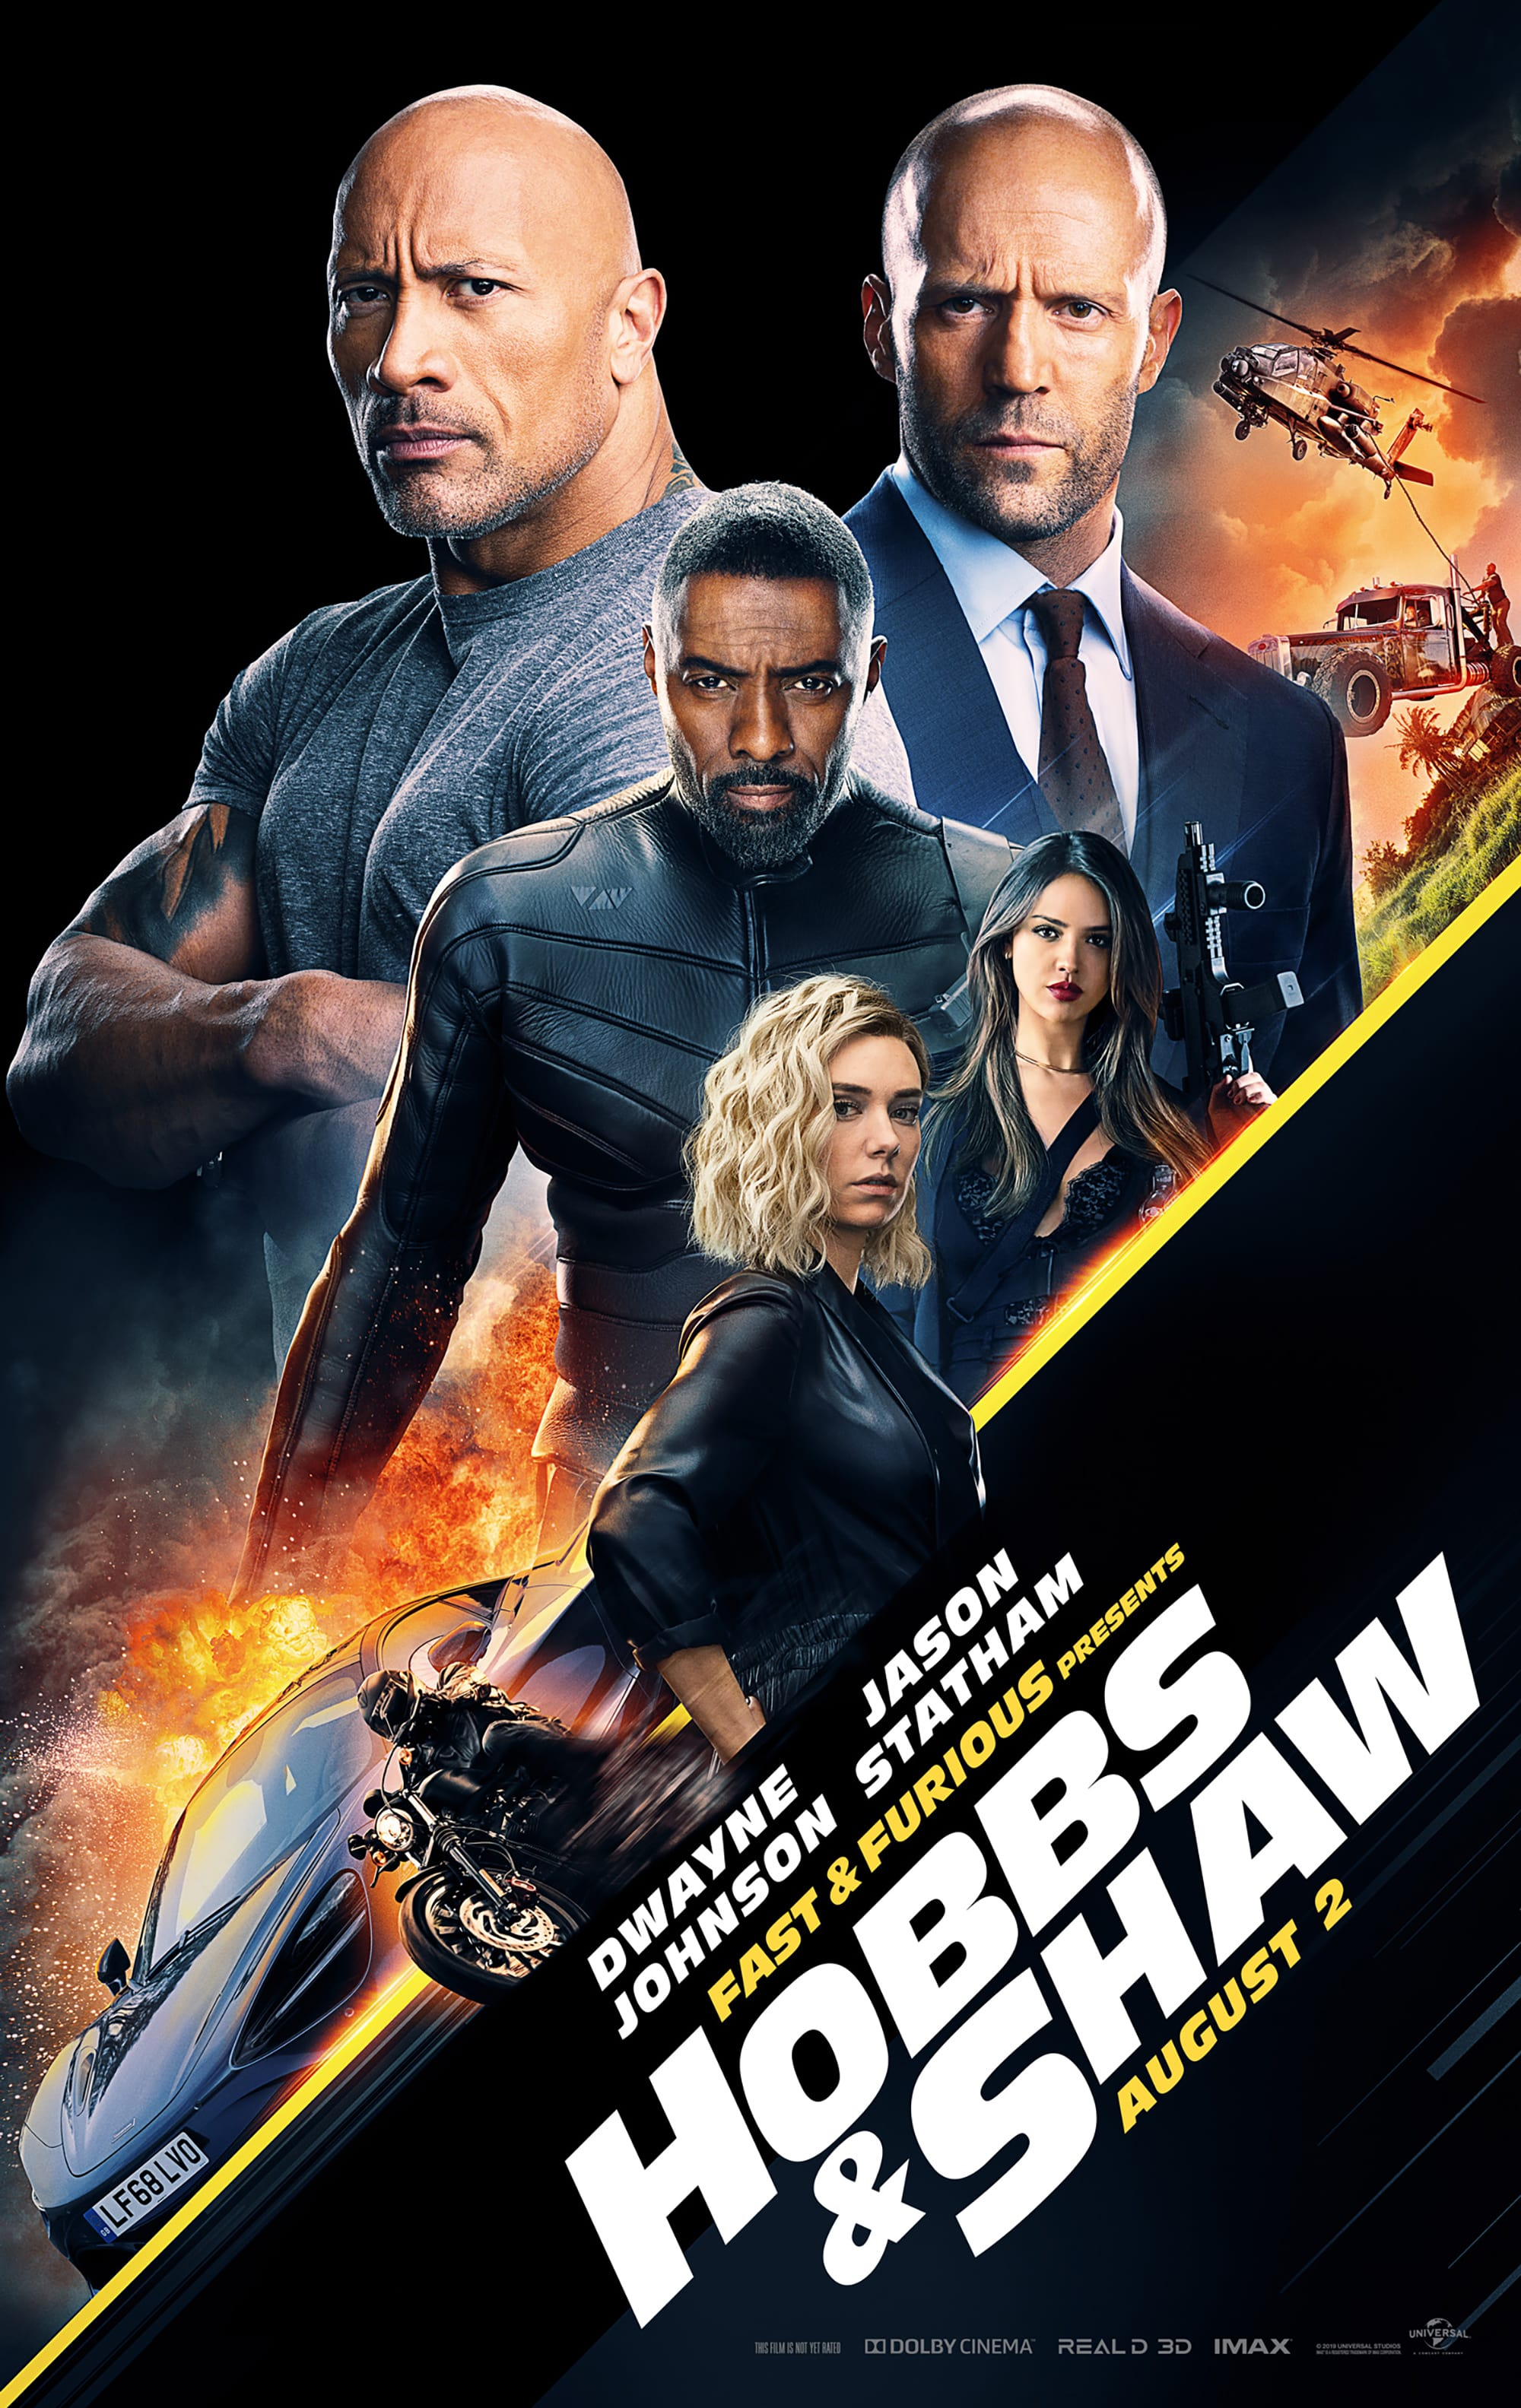 Movie Review: Hobbs & Shaw (2019)